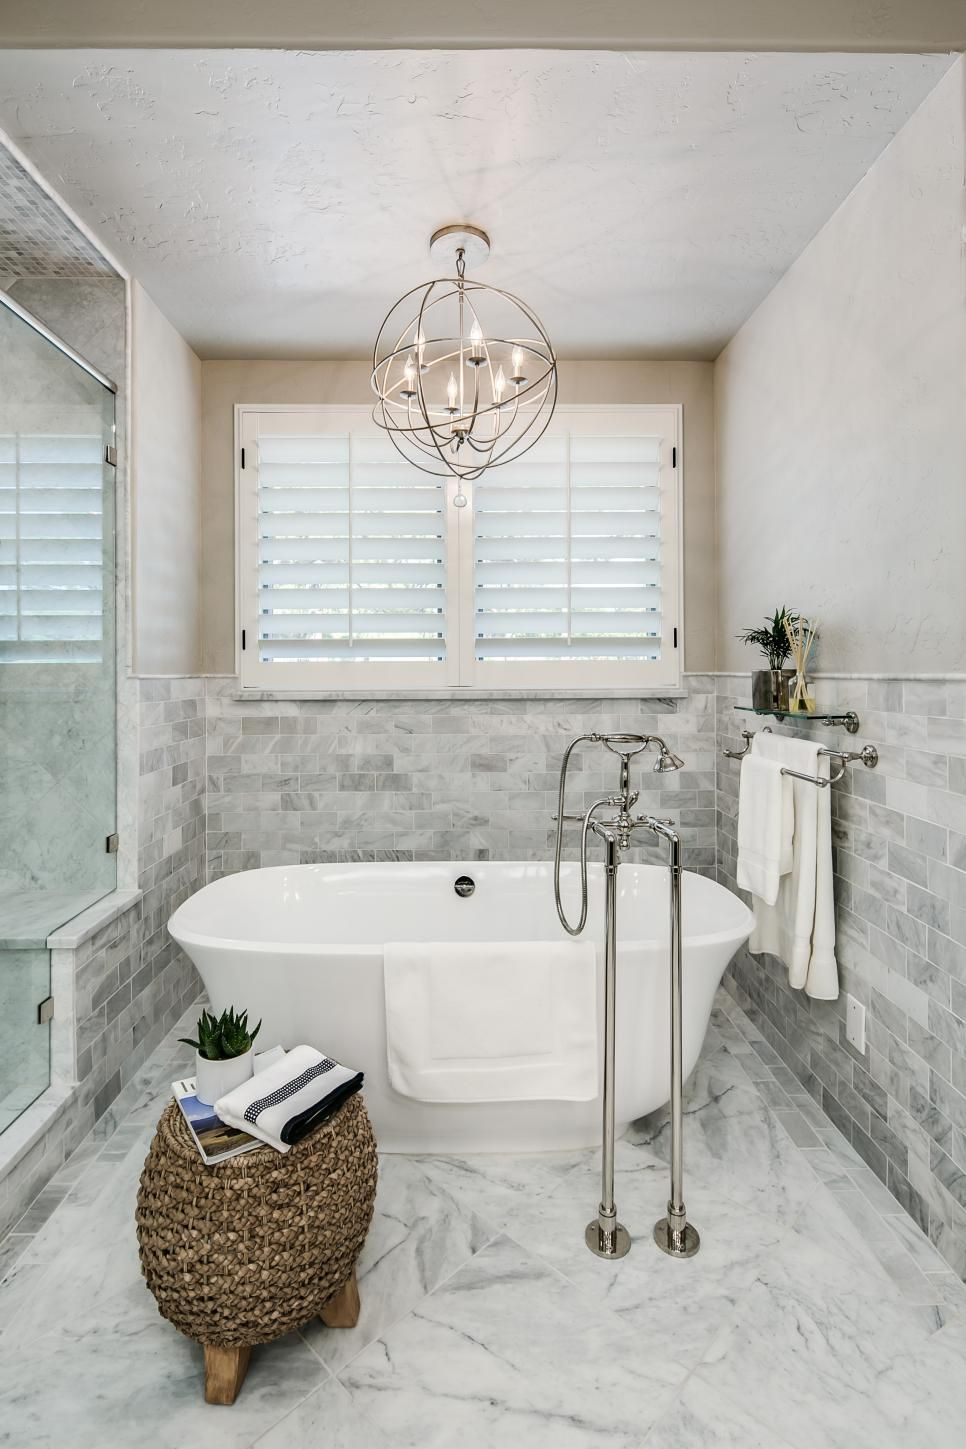 A Metal Orb Chandelier Is Centered Above The Freestanding Tub In This Master Bathroom Making